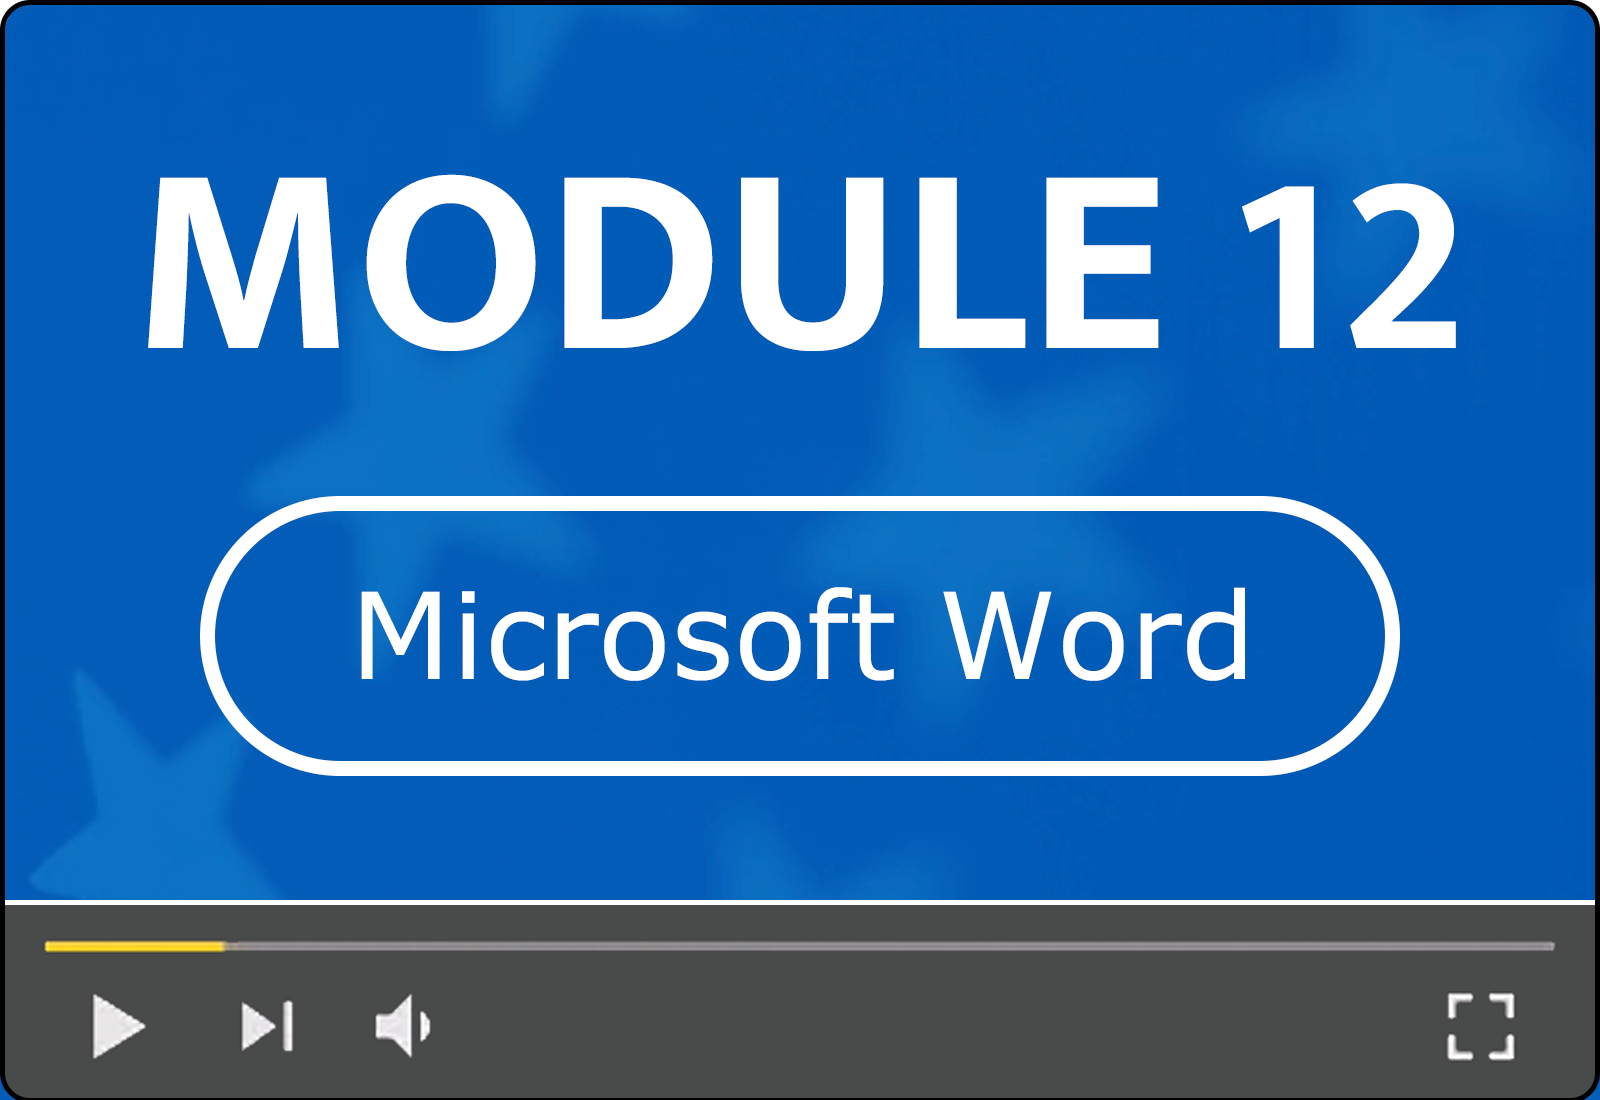 Module 12: Excluding Flashing Objects